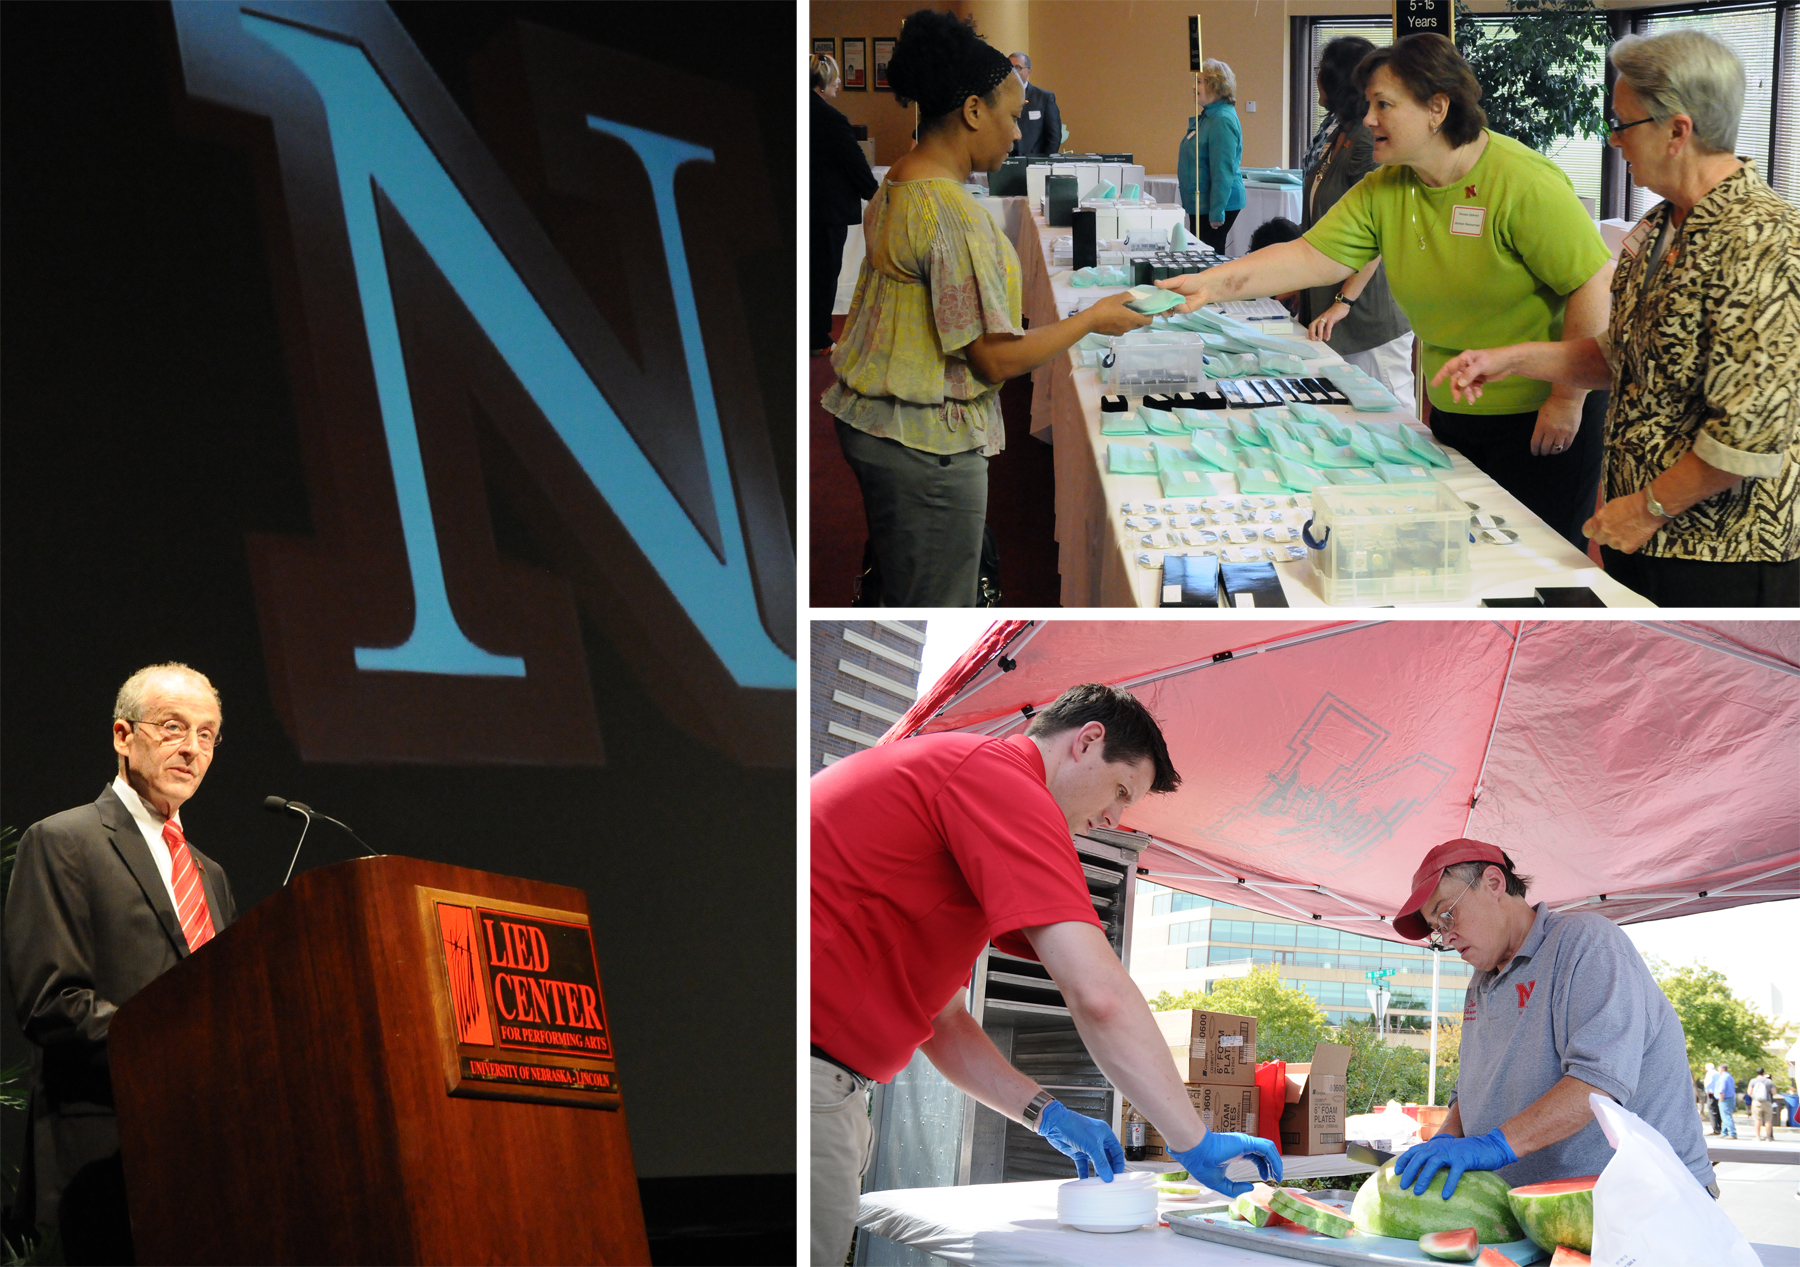 (Clockwise from left) Chancellor Harvey Perlman gives the State of the University address; Teresa Zahren (middle) hands out an Employee Service Award; and Tony Rathgeber and Dodie Fearing cut watermelon for the all-university picnic.